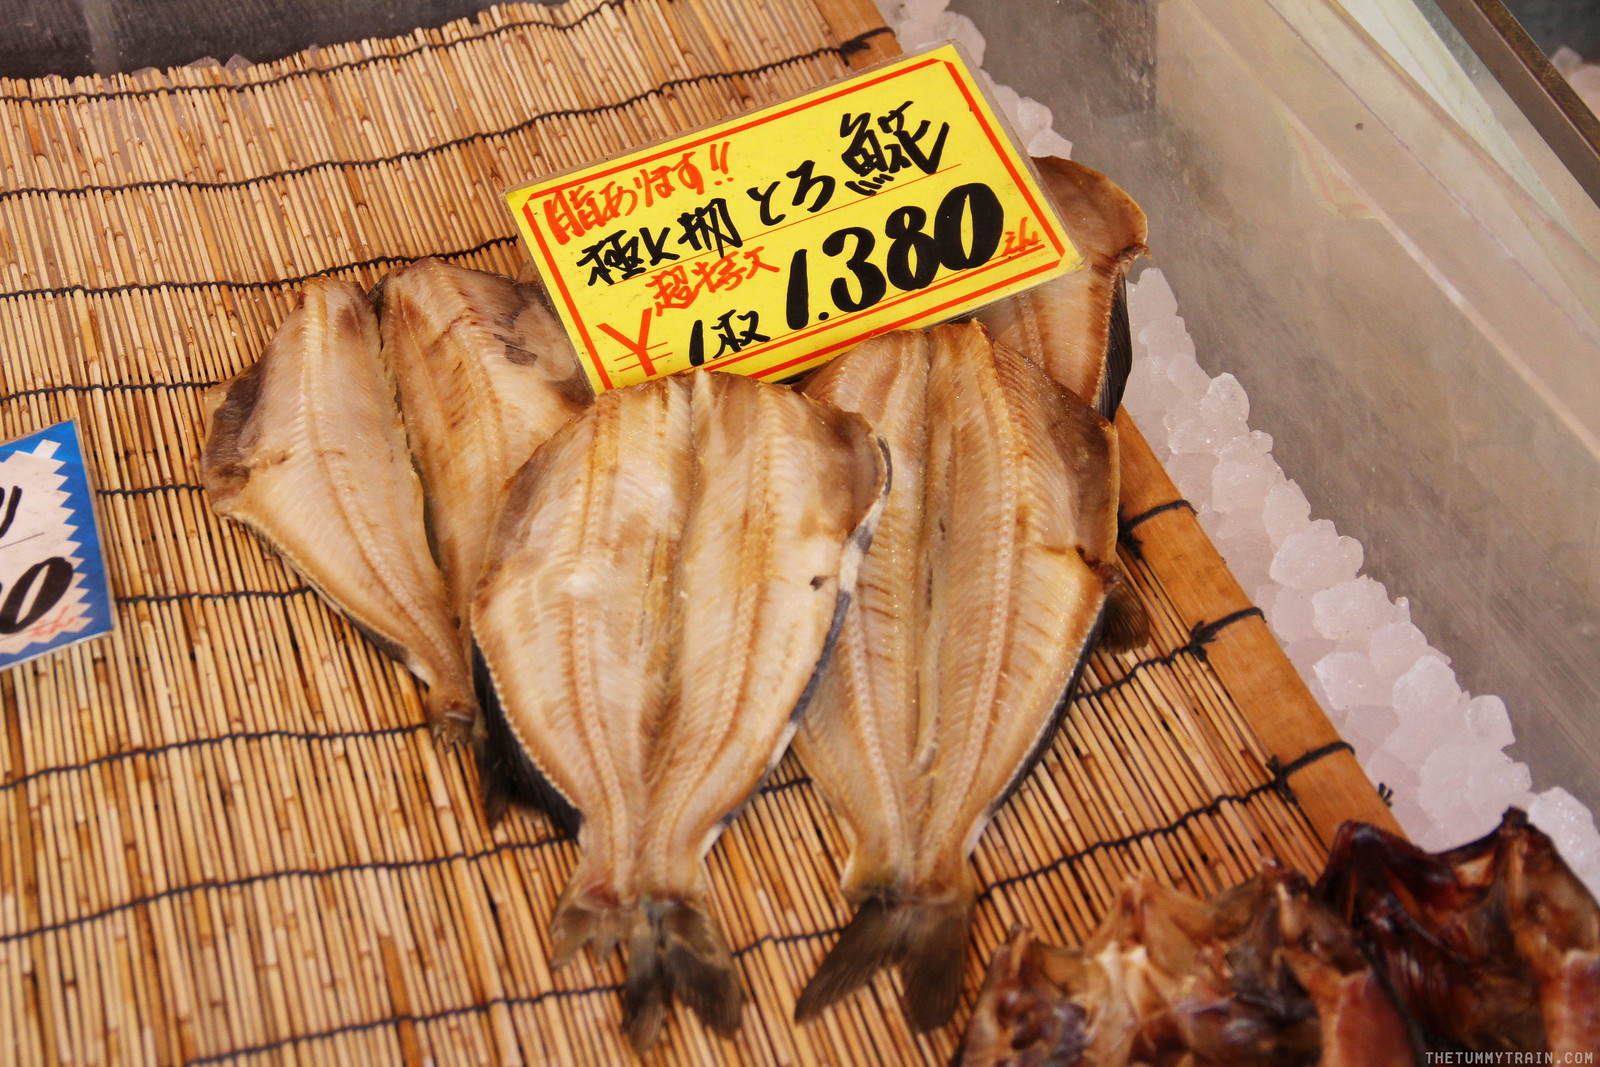 32846272091 a8364a7fbb h - Sapporo Travel Diary 2017: A brief visit to the Sapporo Central Wholesale Market